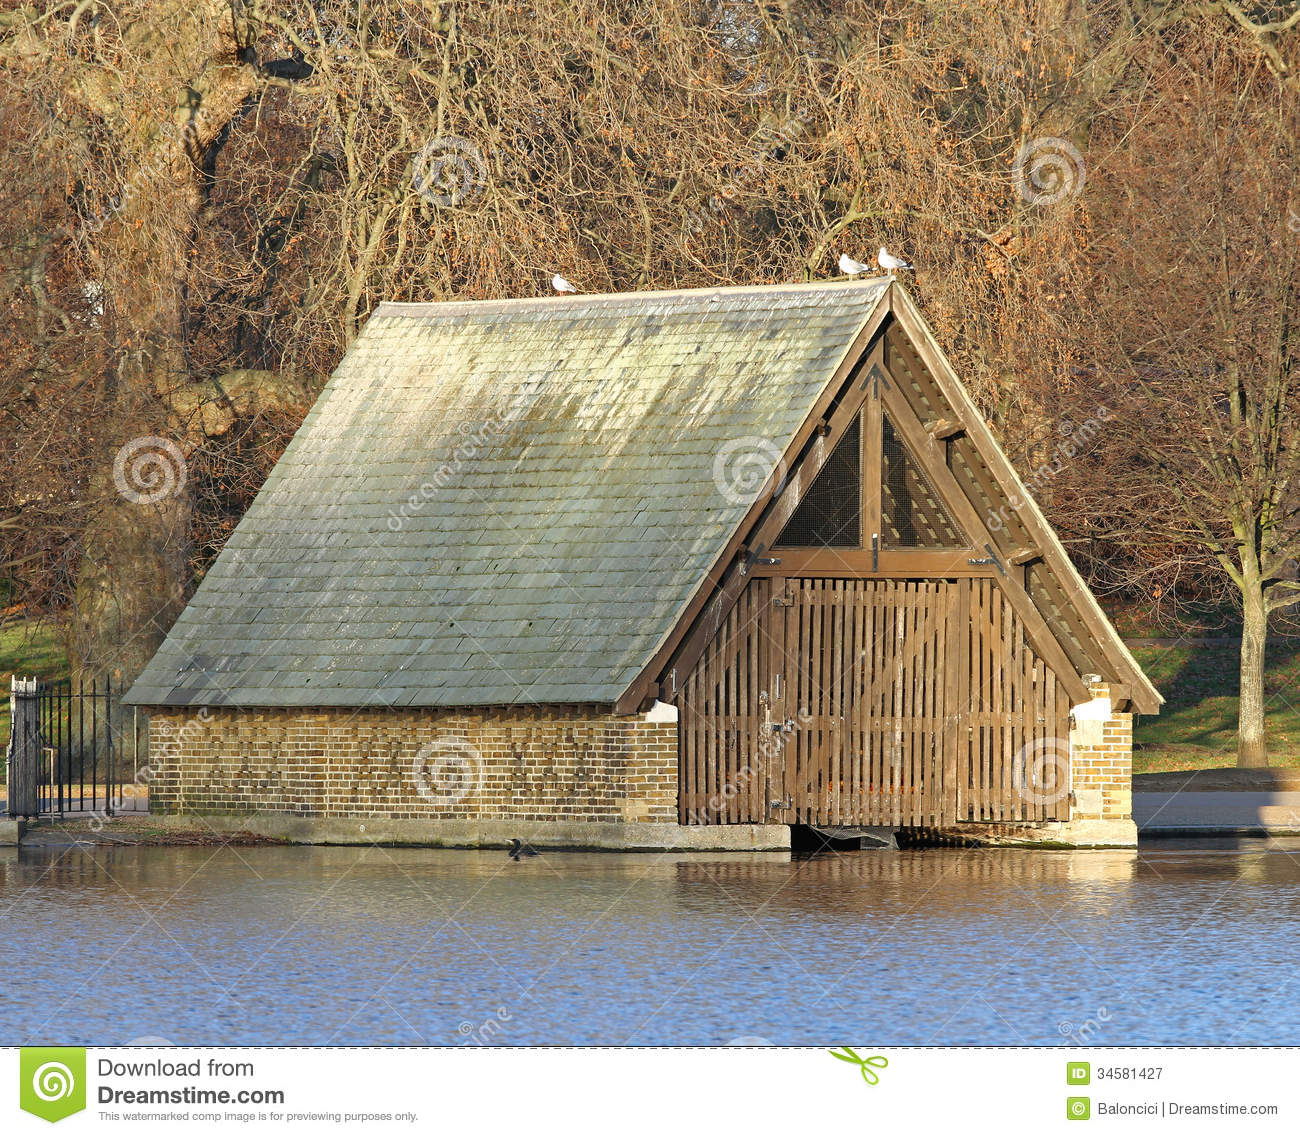 Boat garage stock image. Image of architecture, structure - 34581427